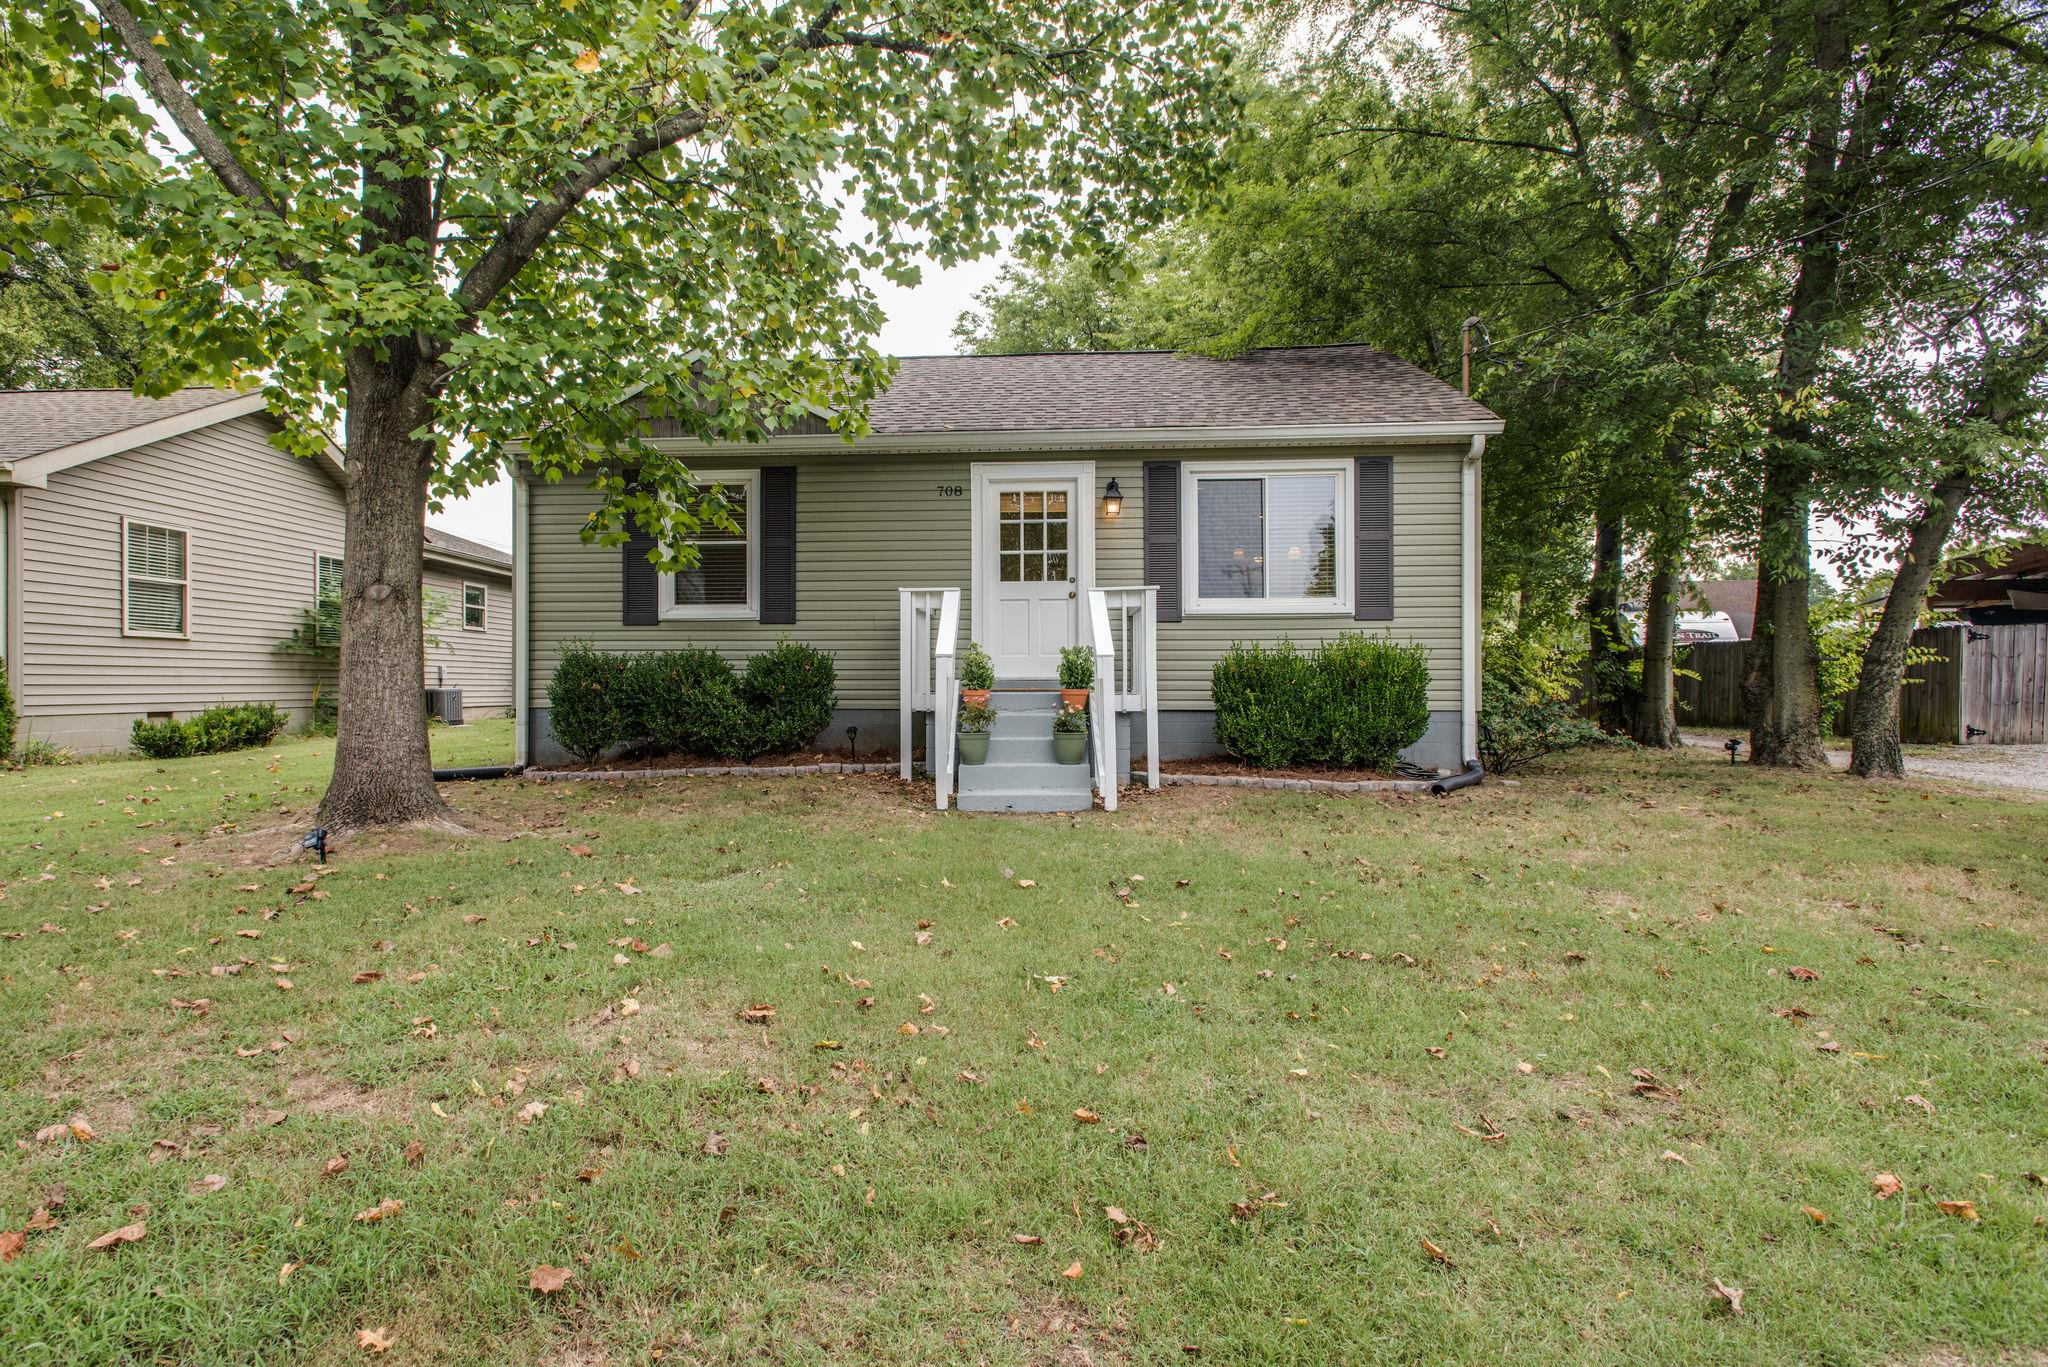 708 45Th Ave N, Nashville, TN 37209 - Nashville, TN real estate listing